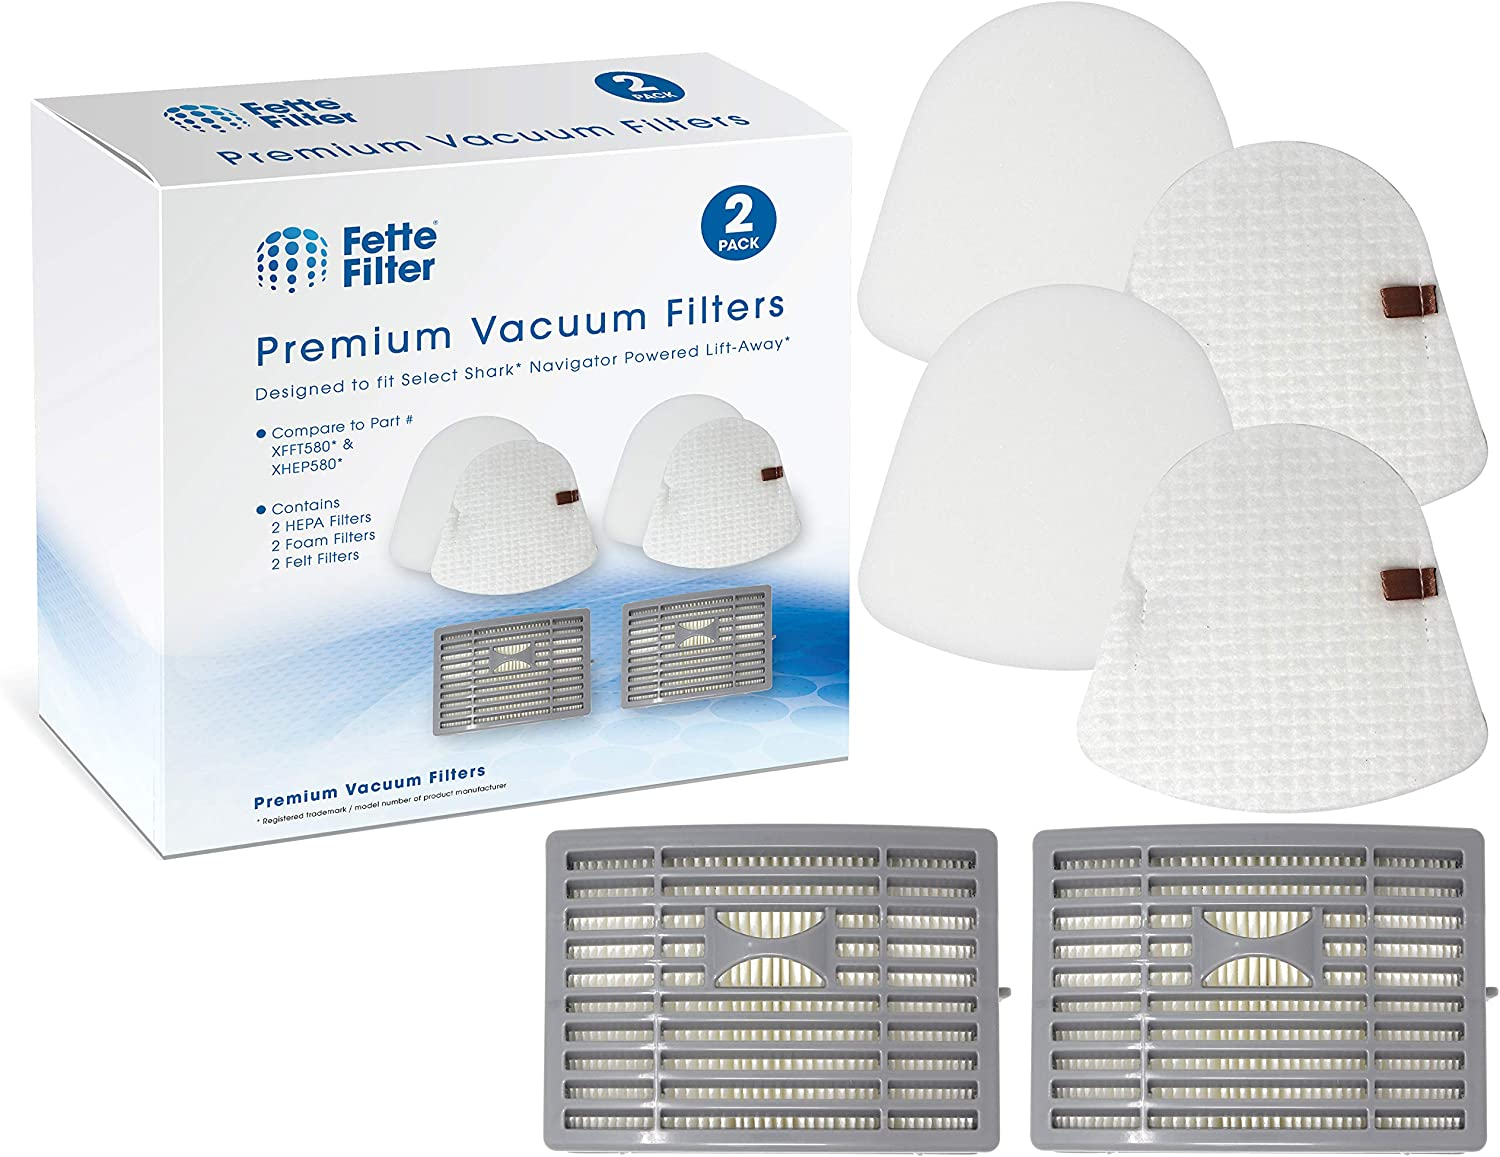 Fette Filter – Vacuum Filter Kit Compatible with Shark NavigatorPowered Lift-Away, 2 HEPA and 2 Foam & 2 Felt Filter Sets for NV581, NV581Q. Compare to Part # XFFT580, XHEP580.